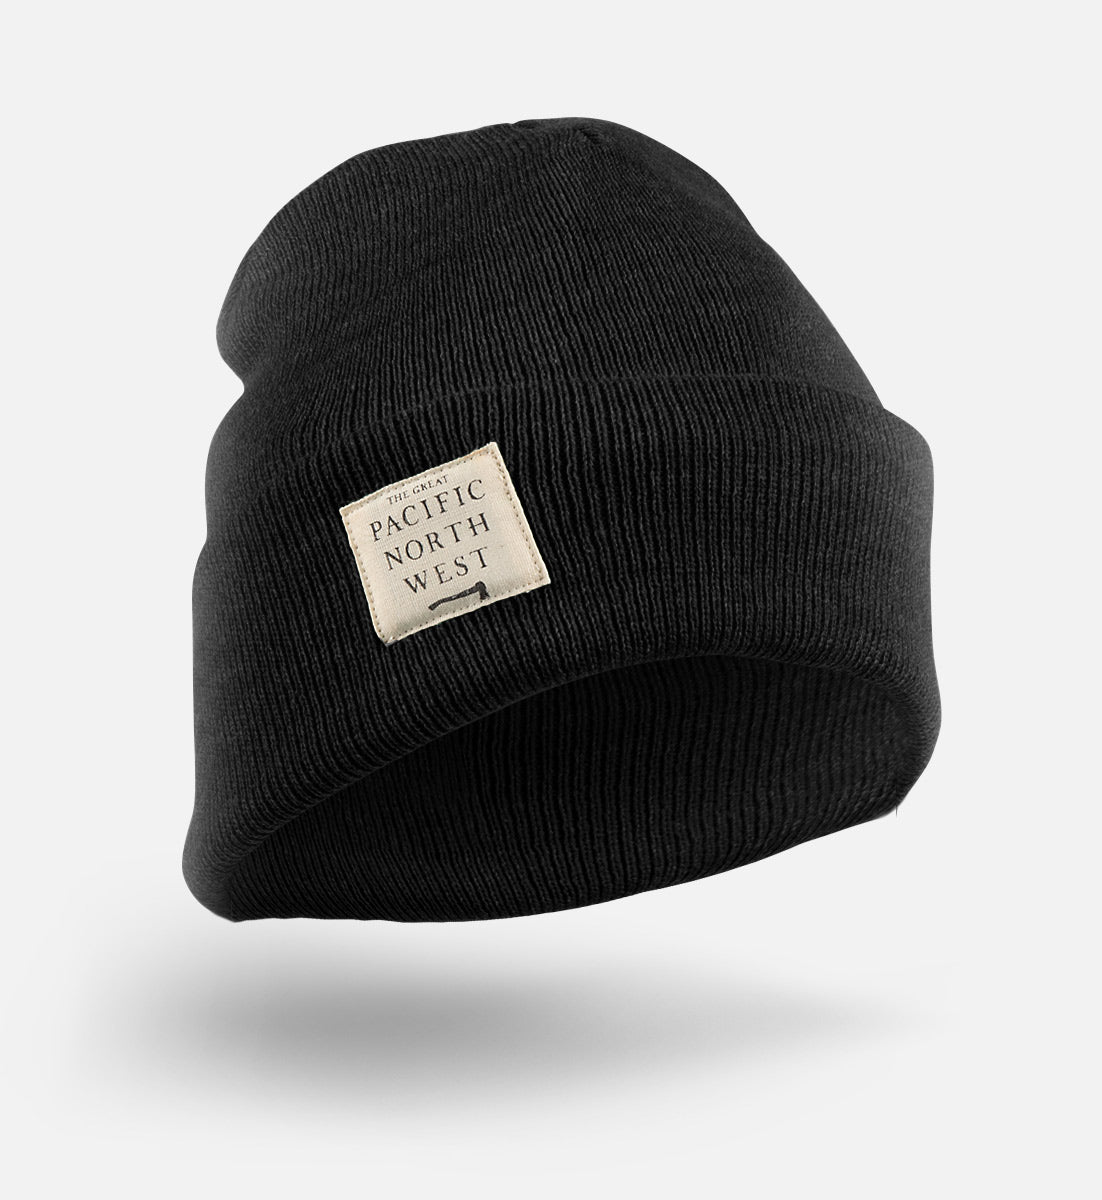 Lumberjack Beanie - Charcoal - The Great PNW